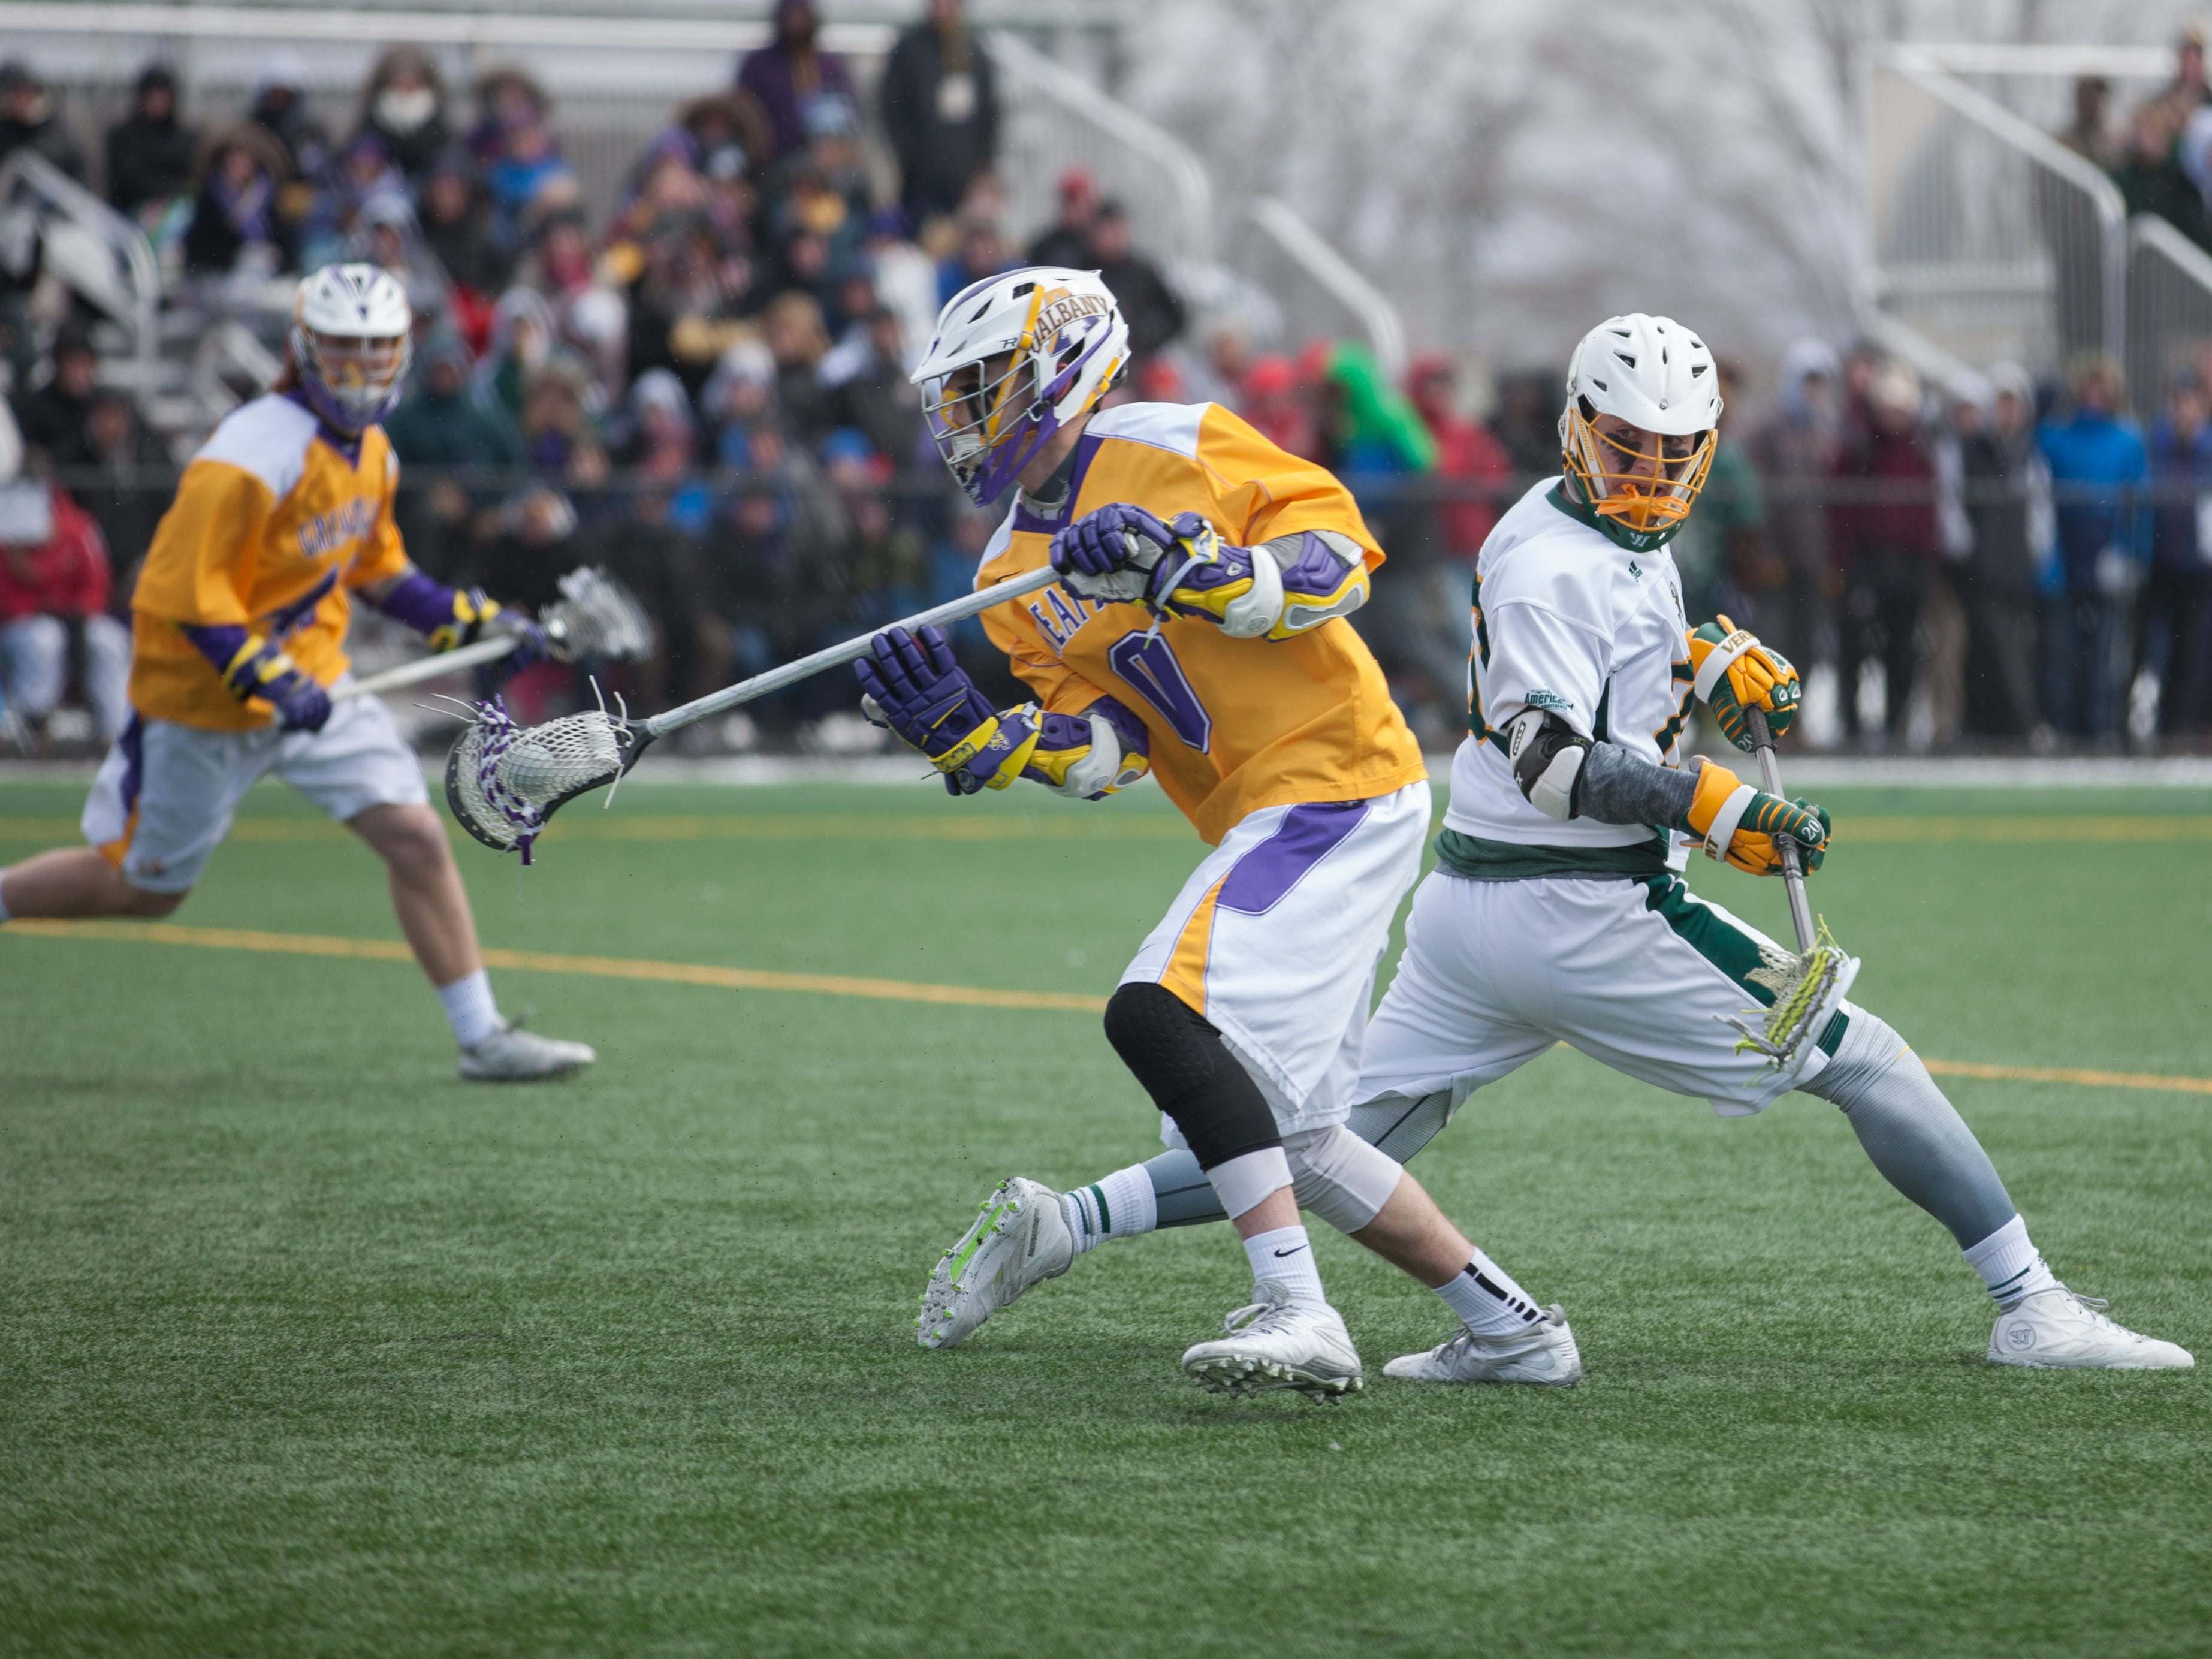 Albany's John Maloney, left, runs past Vermont's Bryan Capone during a men's lacrosse game at Virtue Field on Saturday.